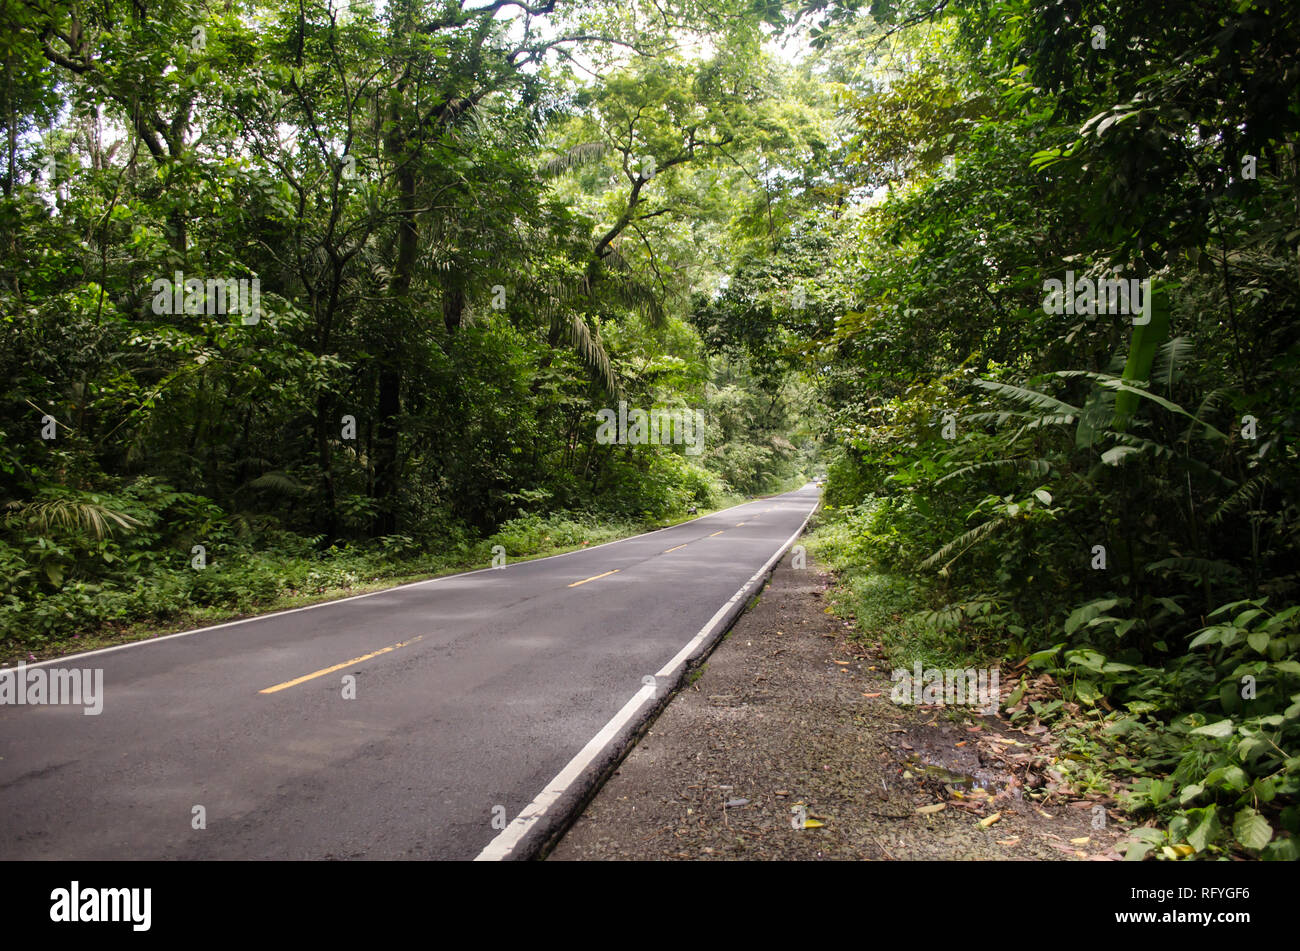 Madden Avenue also known as 'La Forestal' . It is a road in the middle of a protected forest in Panama. - Stock Image